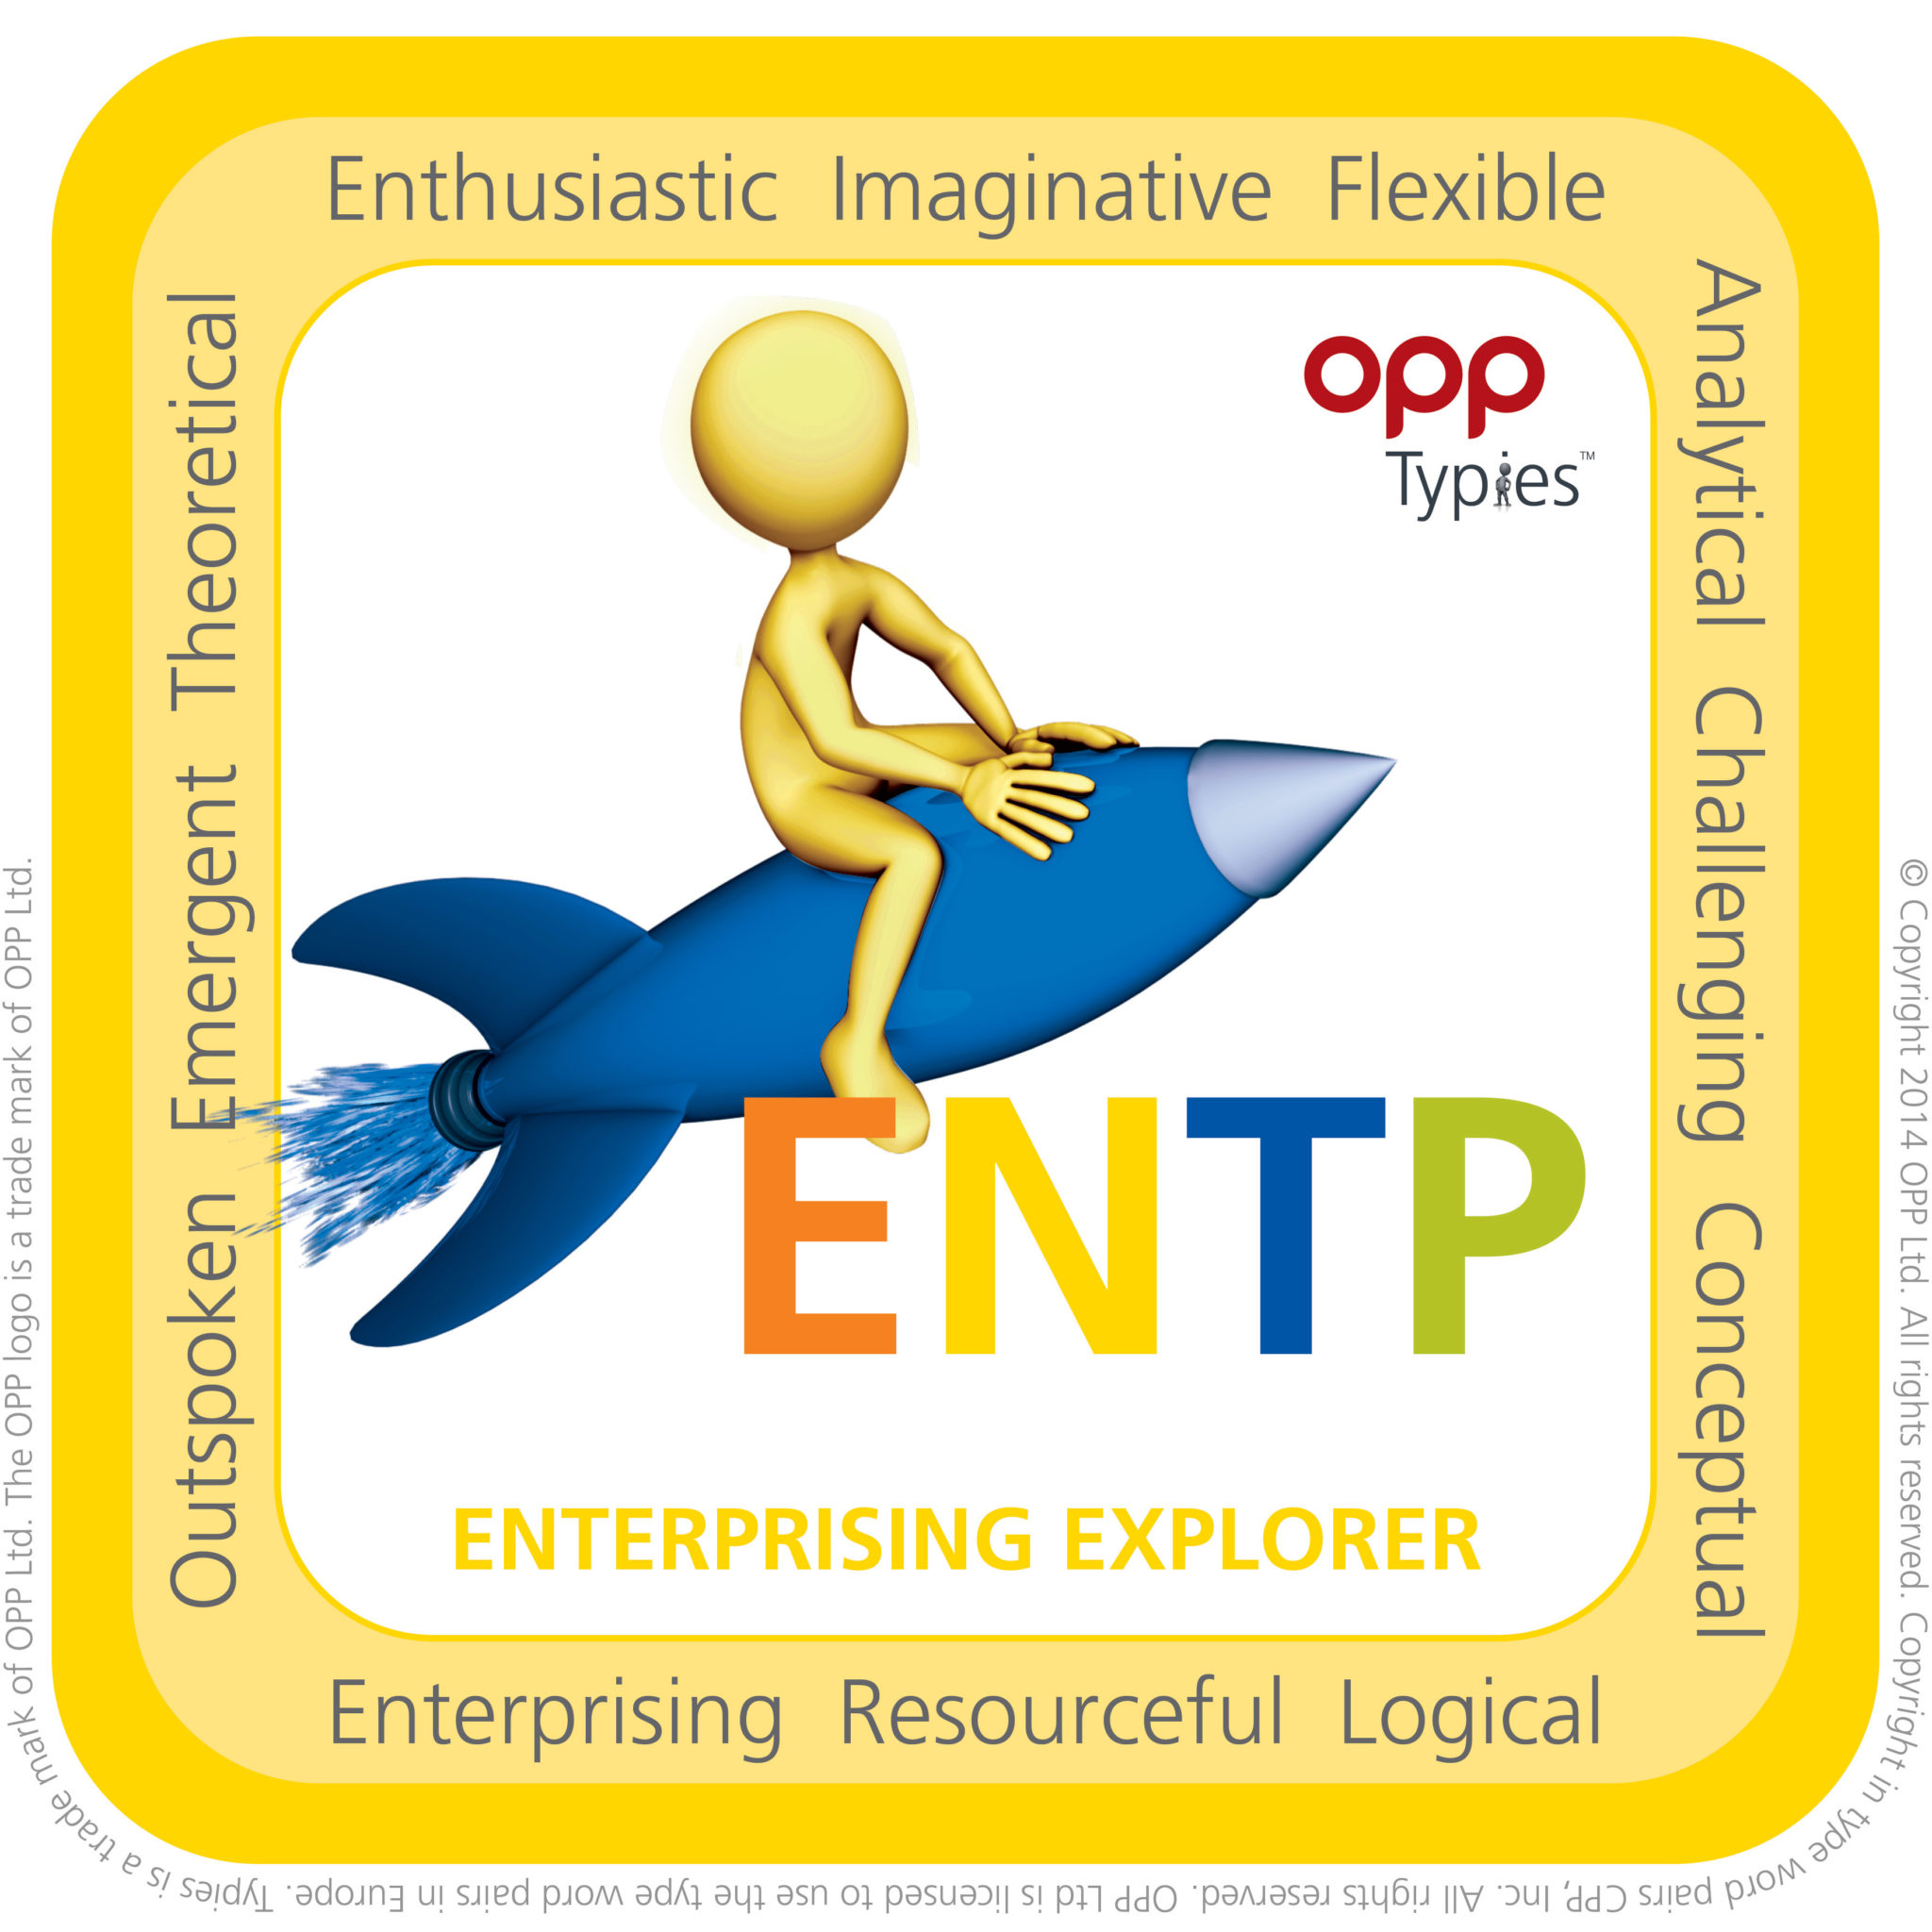 ENTP Typie, willerby hill hr, hr advice hull, mbti east yorkshire, mbti hull